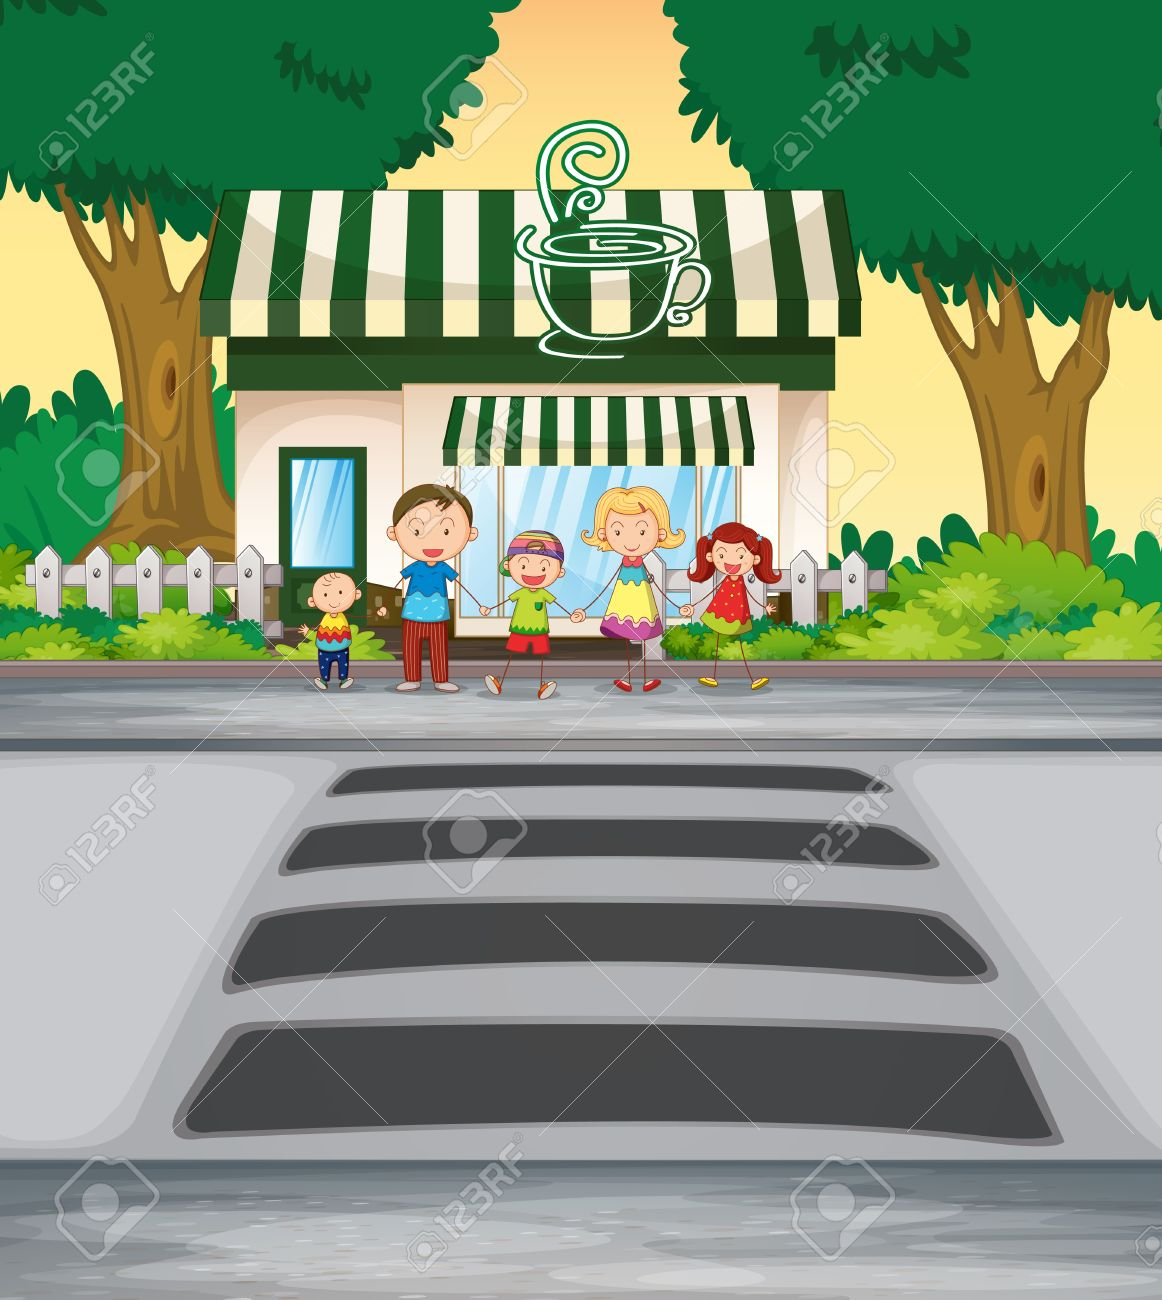 Hilltop Coffee House & Family Center Americas, Illustration Family Crossing Road Near Coffee Shop Royalty Free ...